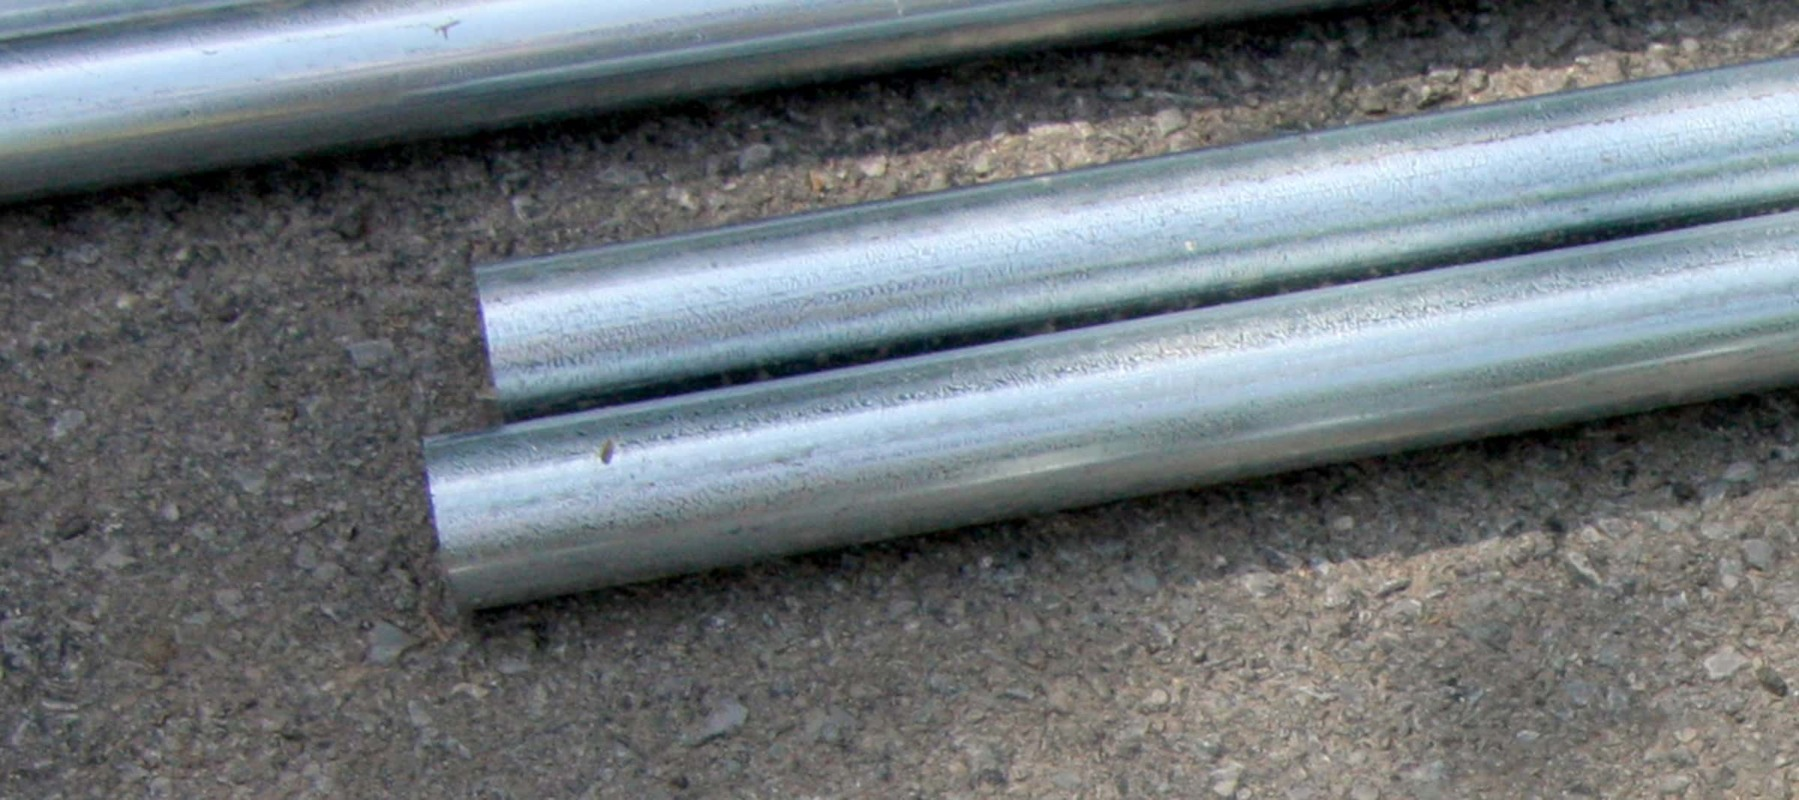 Schedule steel pipe and gator tube cut to length